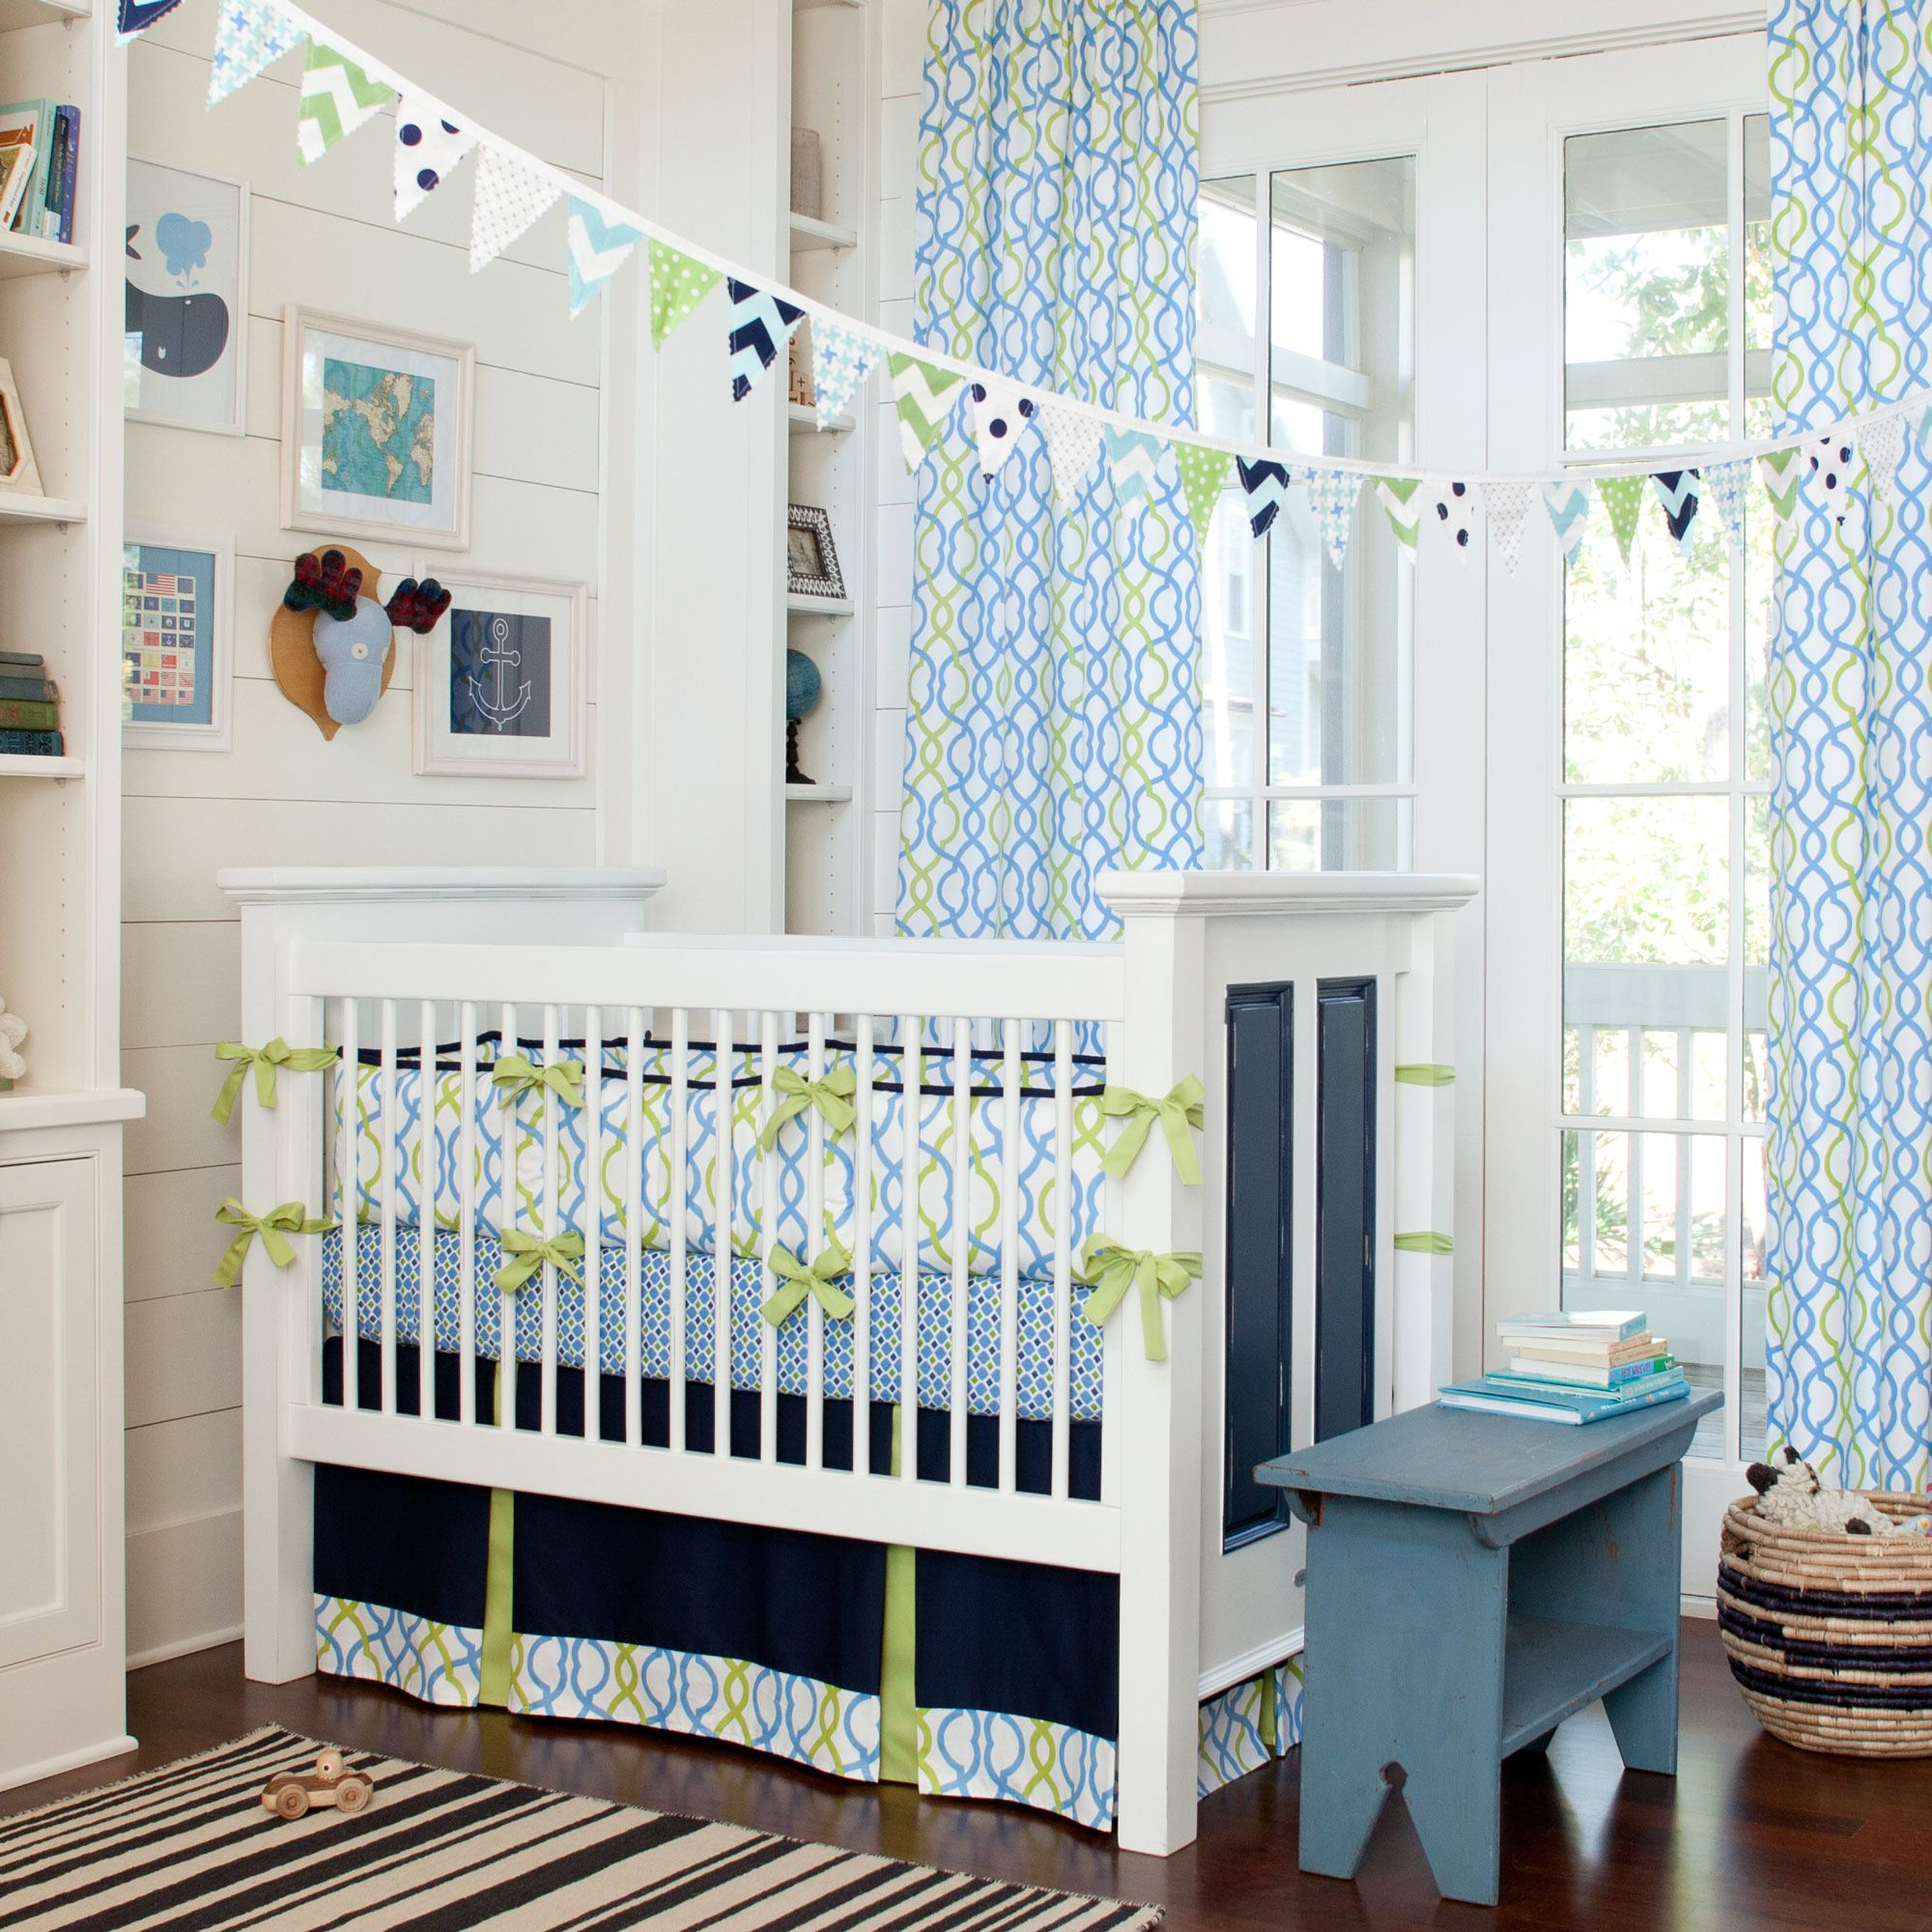 Hy Bright Blue And Green Colors For Baby Boy S Nursery Navy Waves Crib Bedding Carouseldesigns